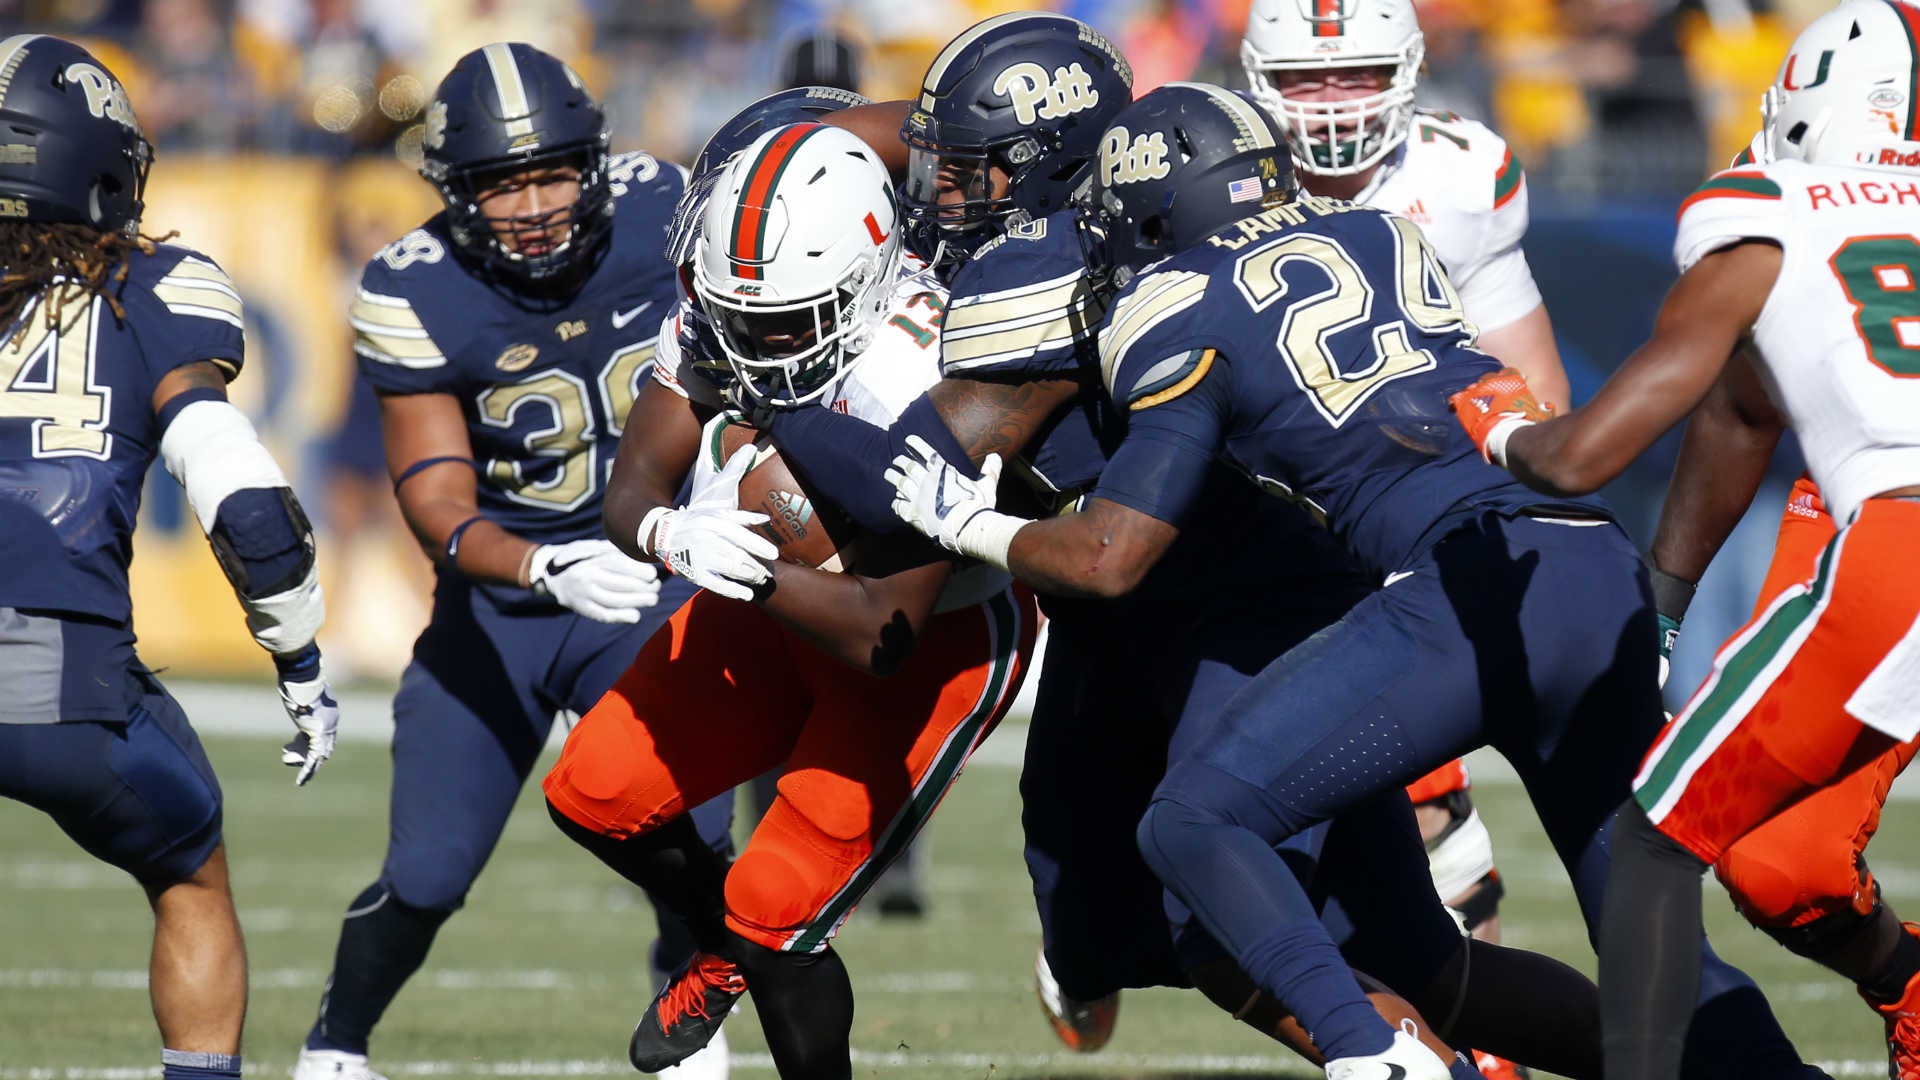 Pitt stuns No. 2 Miami, ends Hurricanes' flawless season